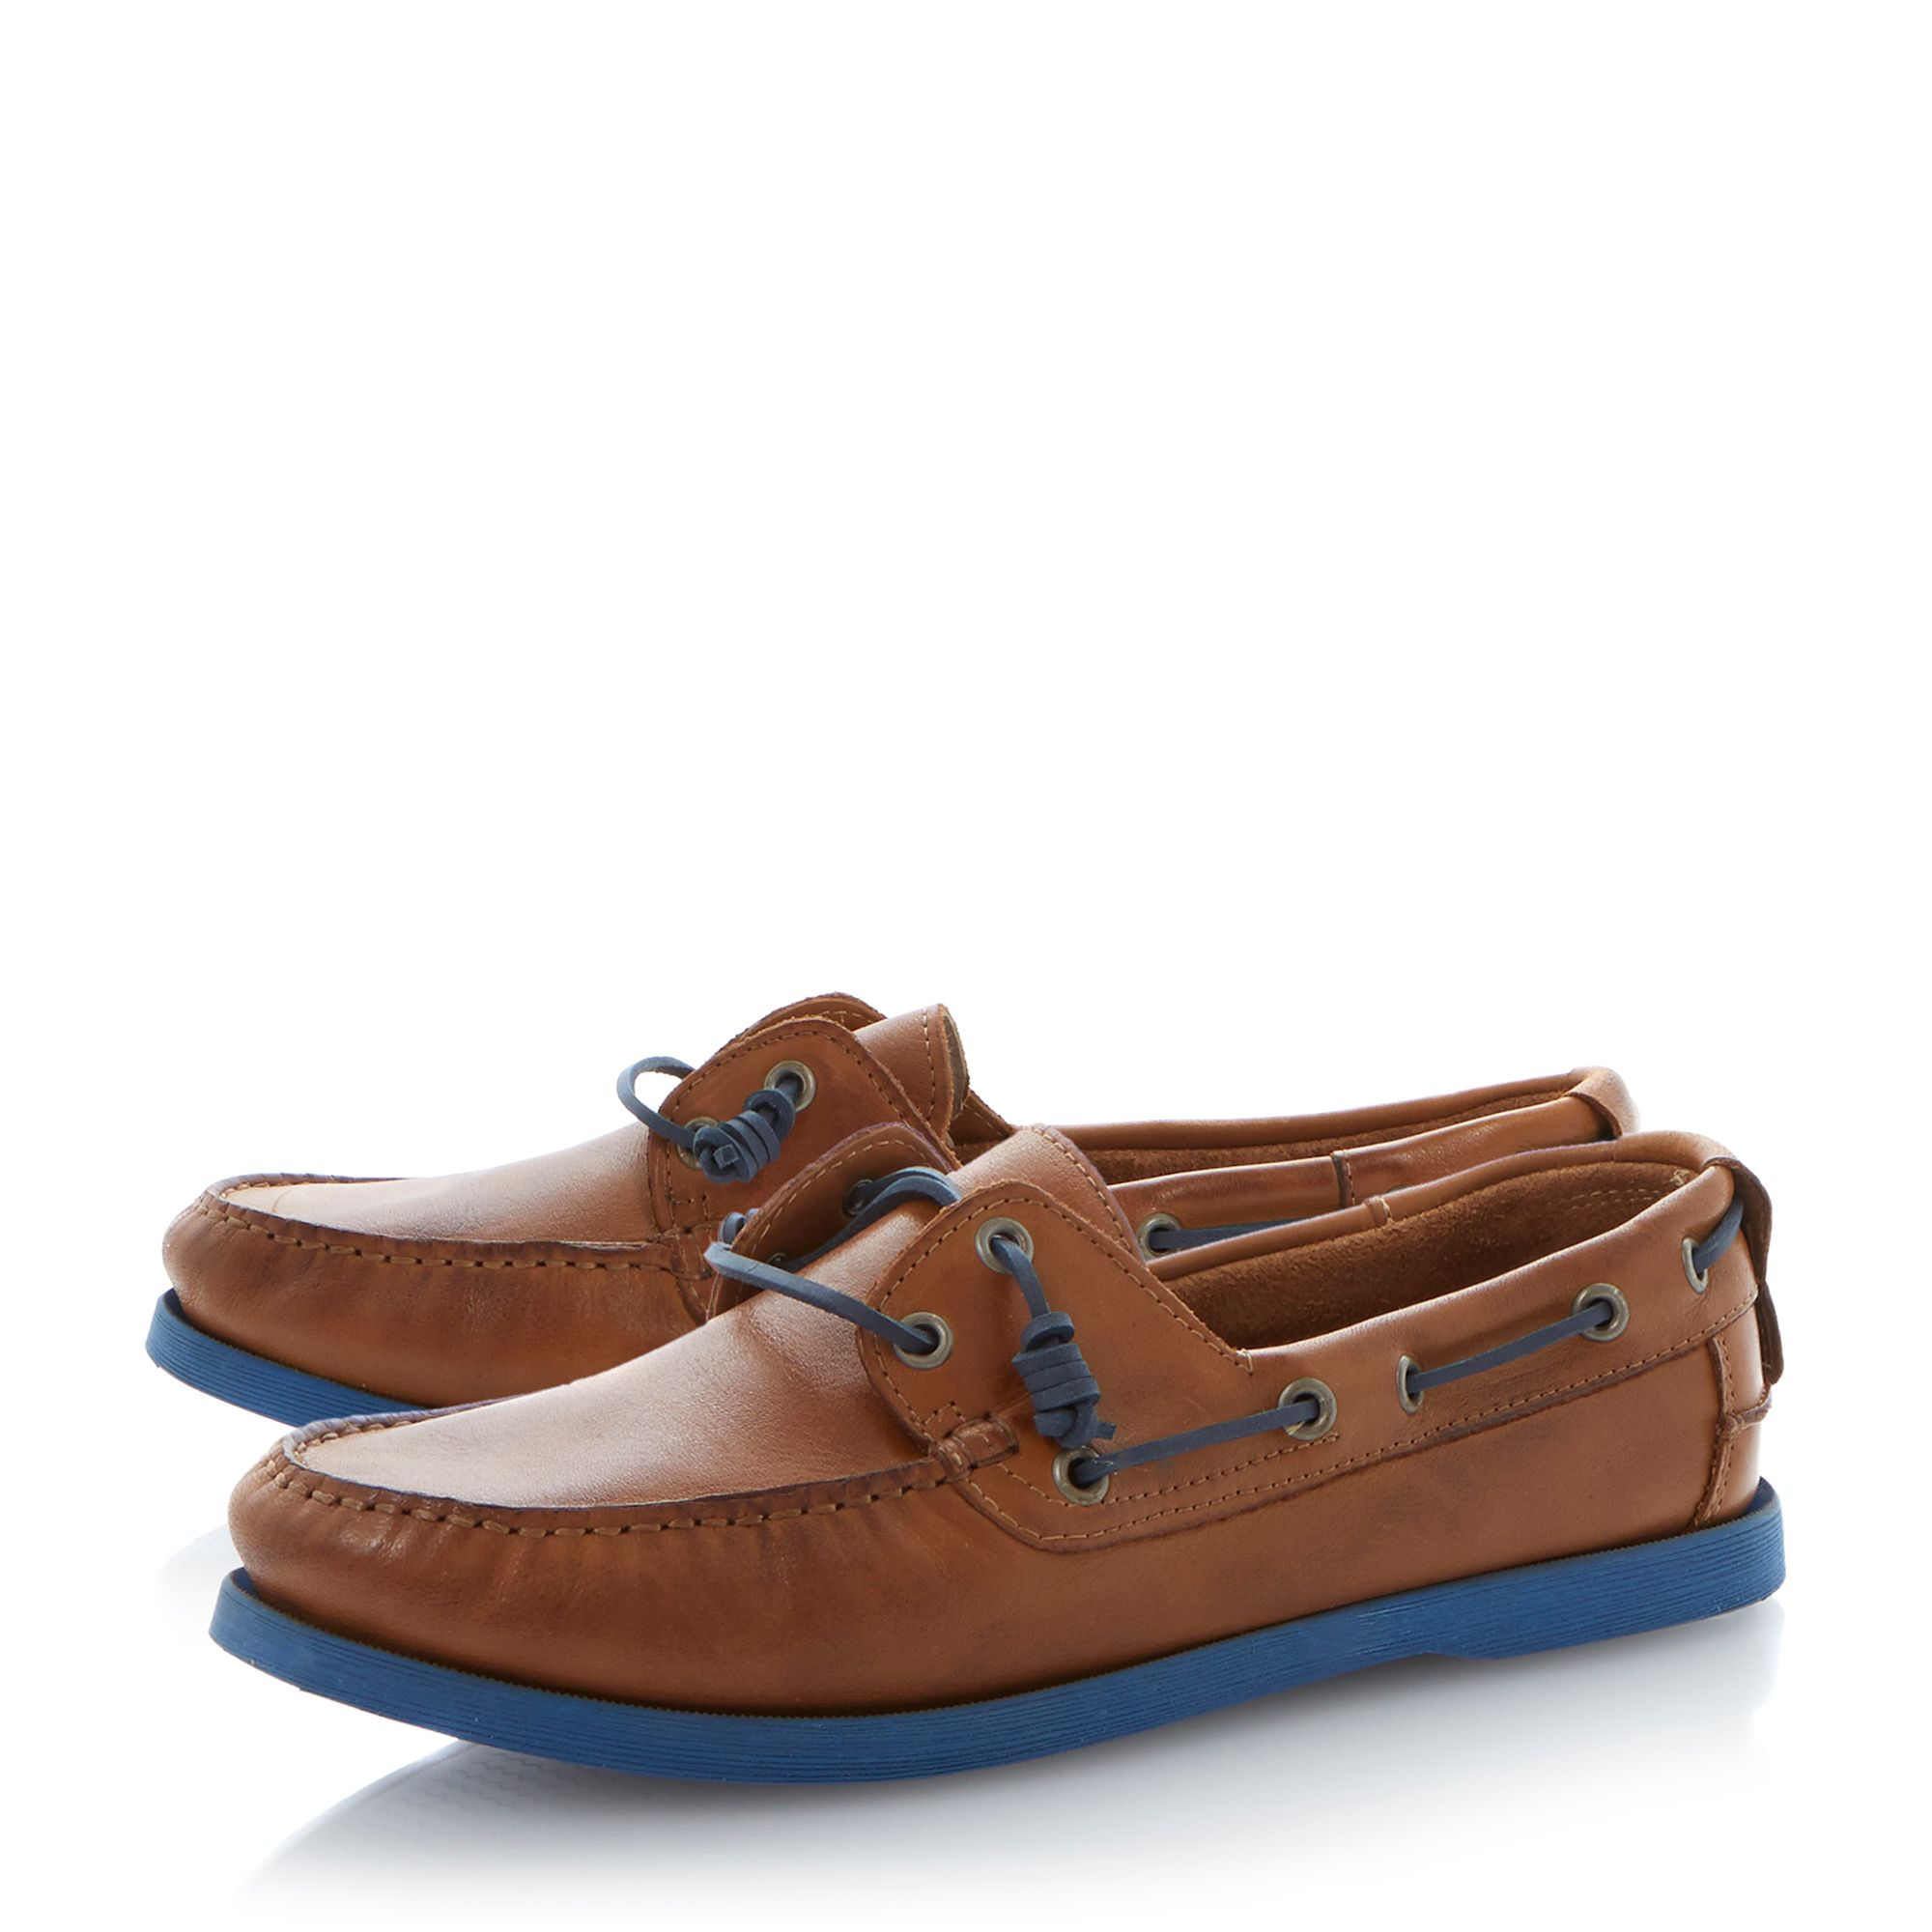 Basset coloured sole boat shoes